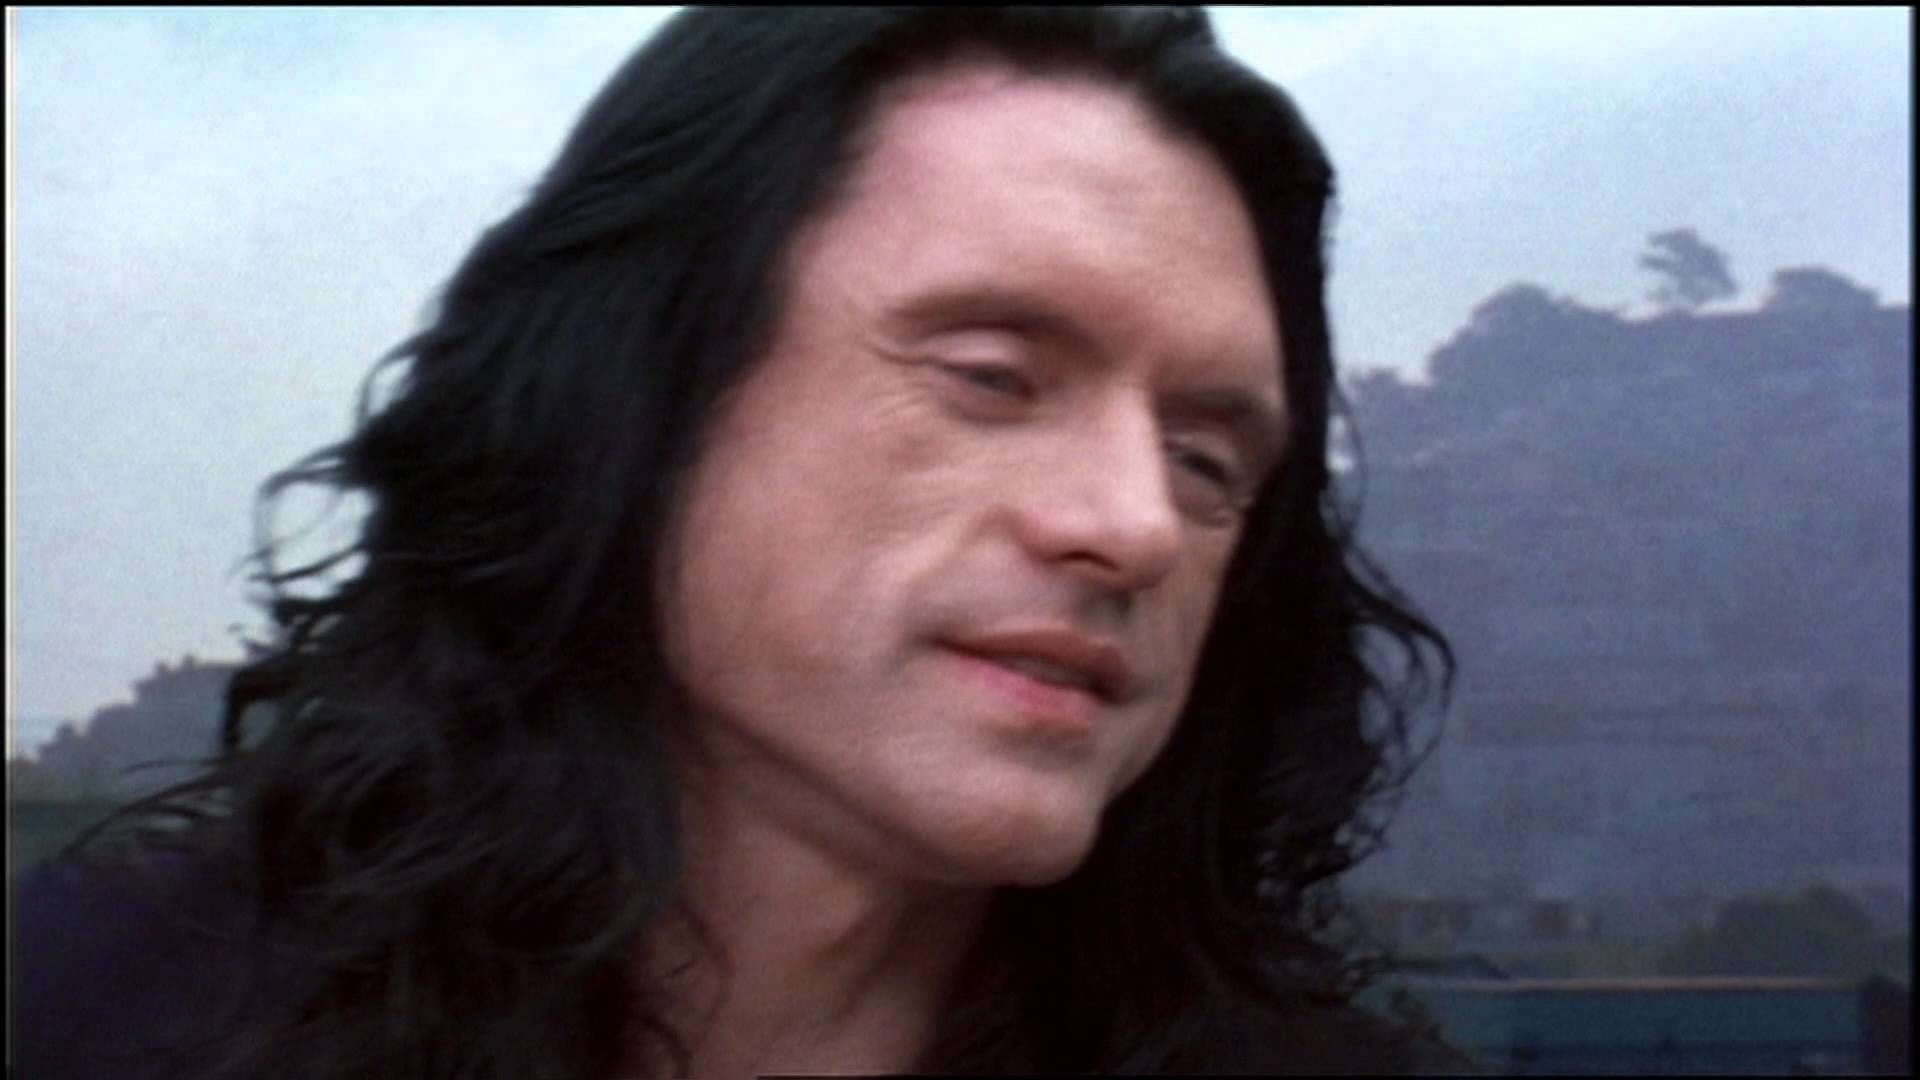 Best of RiffTrax Live The Room I laughed so hard my